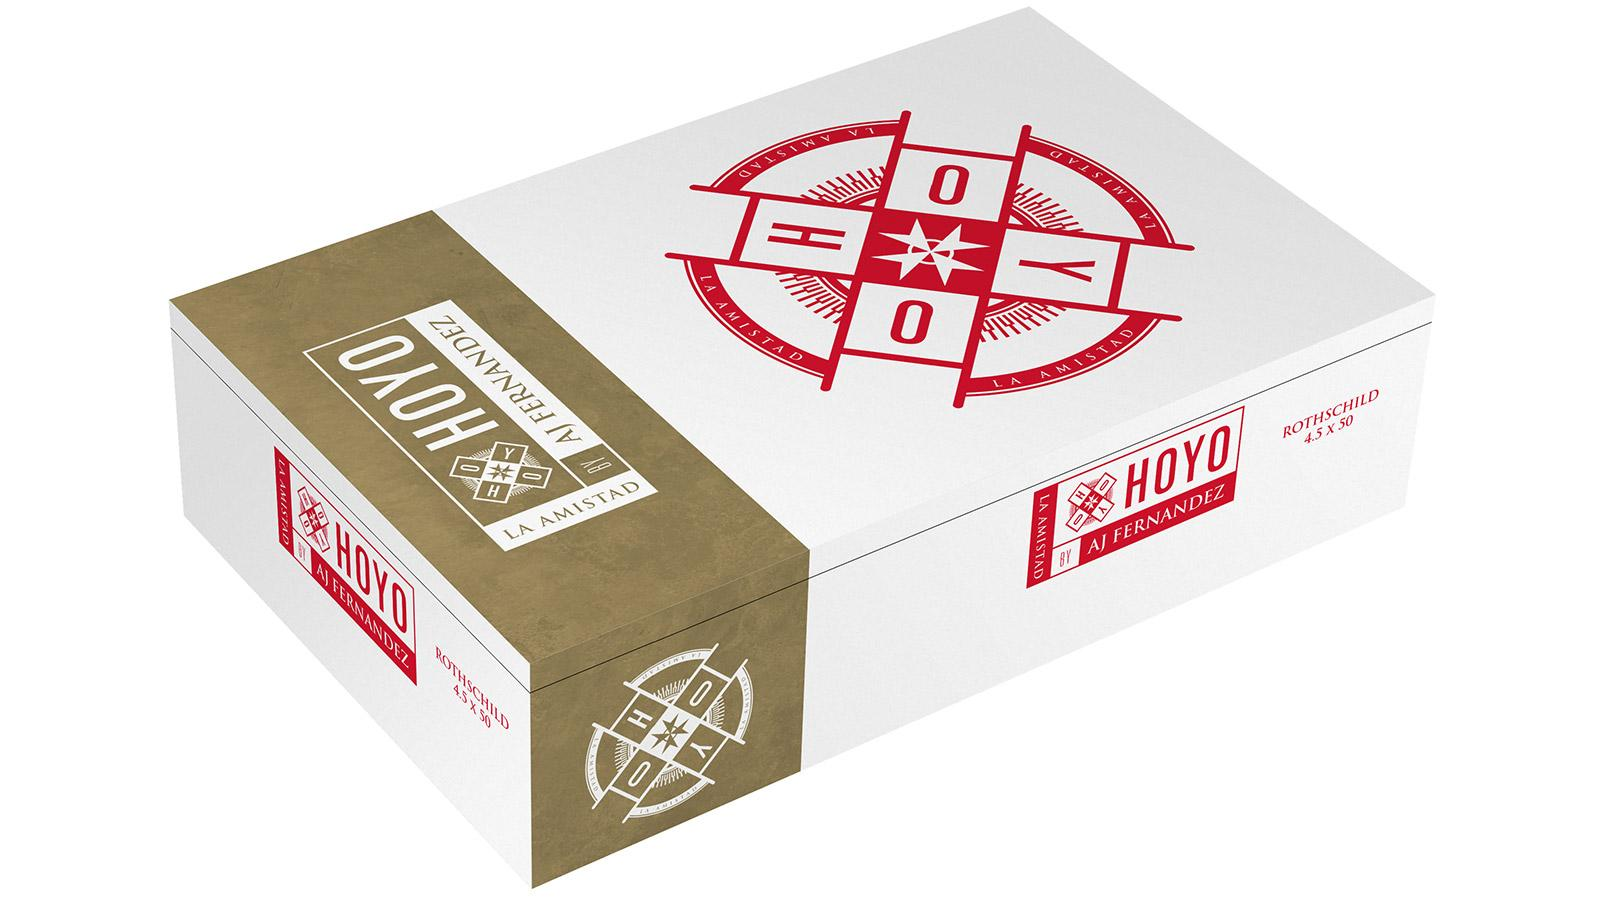 A.J. Fernandez, General Cigar Announce Alliance For Hoyo La Amistad